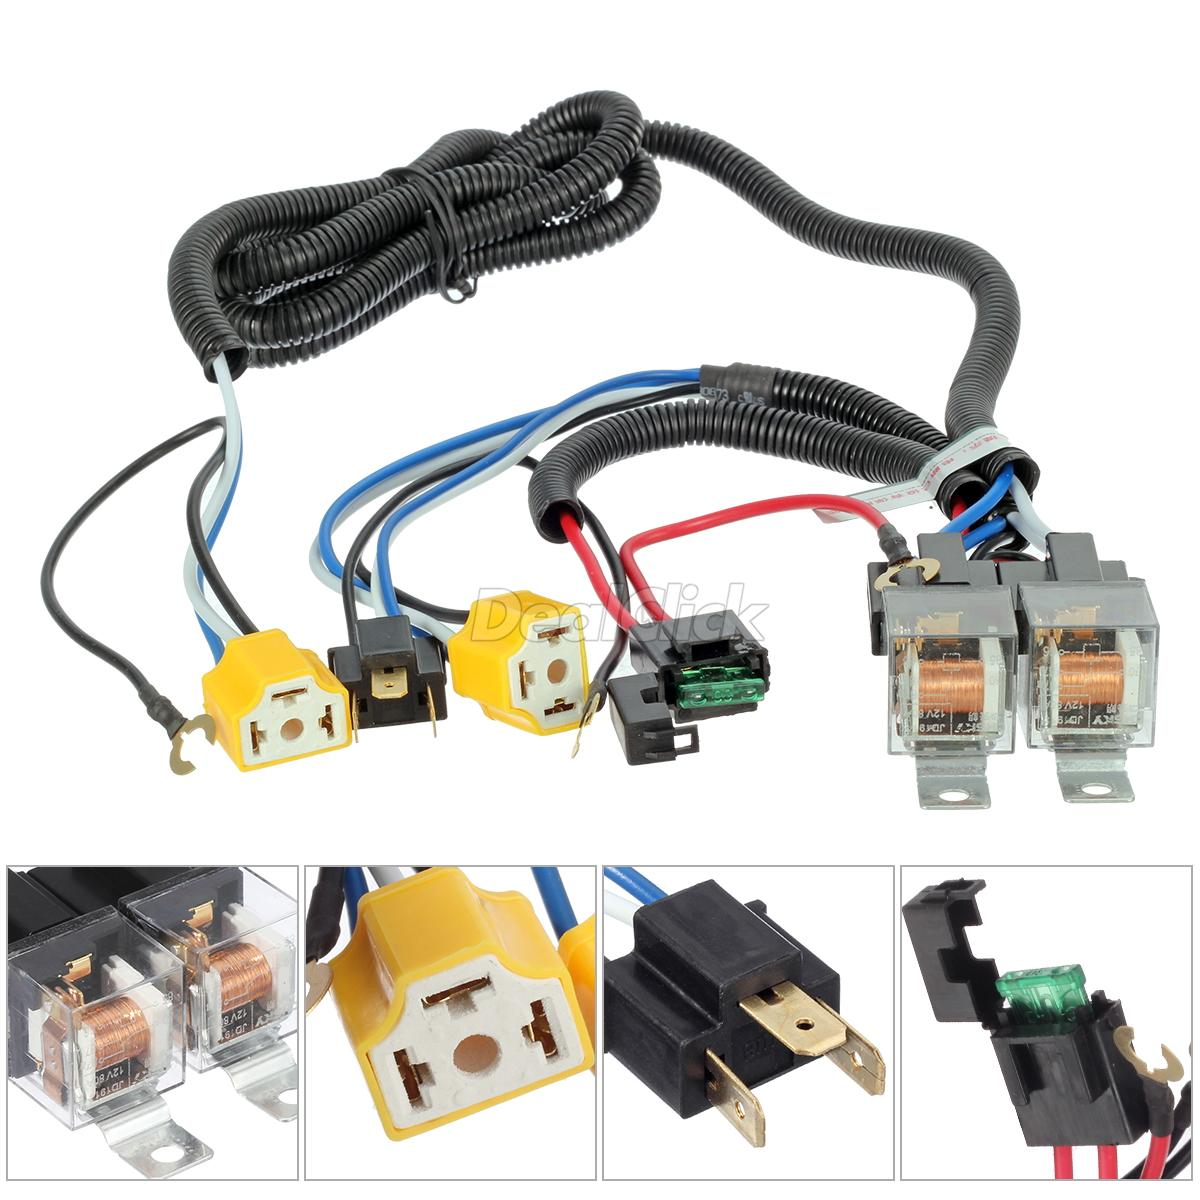 hight resolution of details about ceramic h4 headlight headlamp h4 light bulb relay wiring harness socket plug set